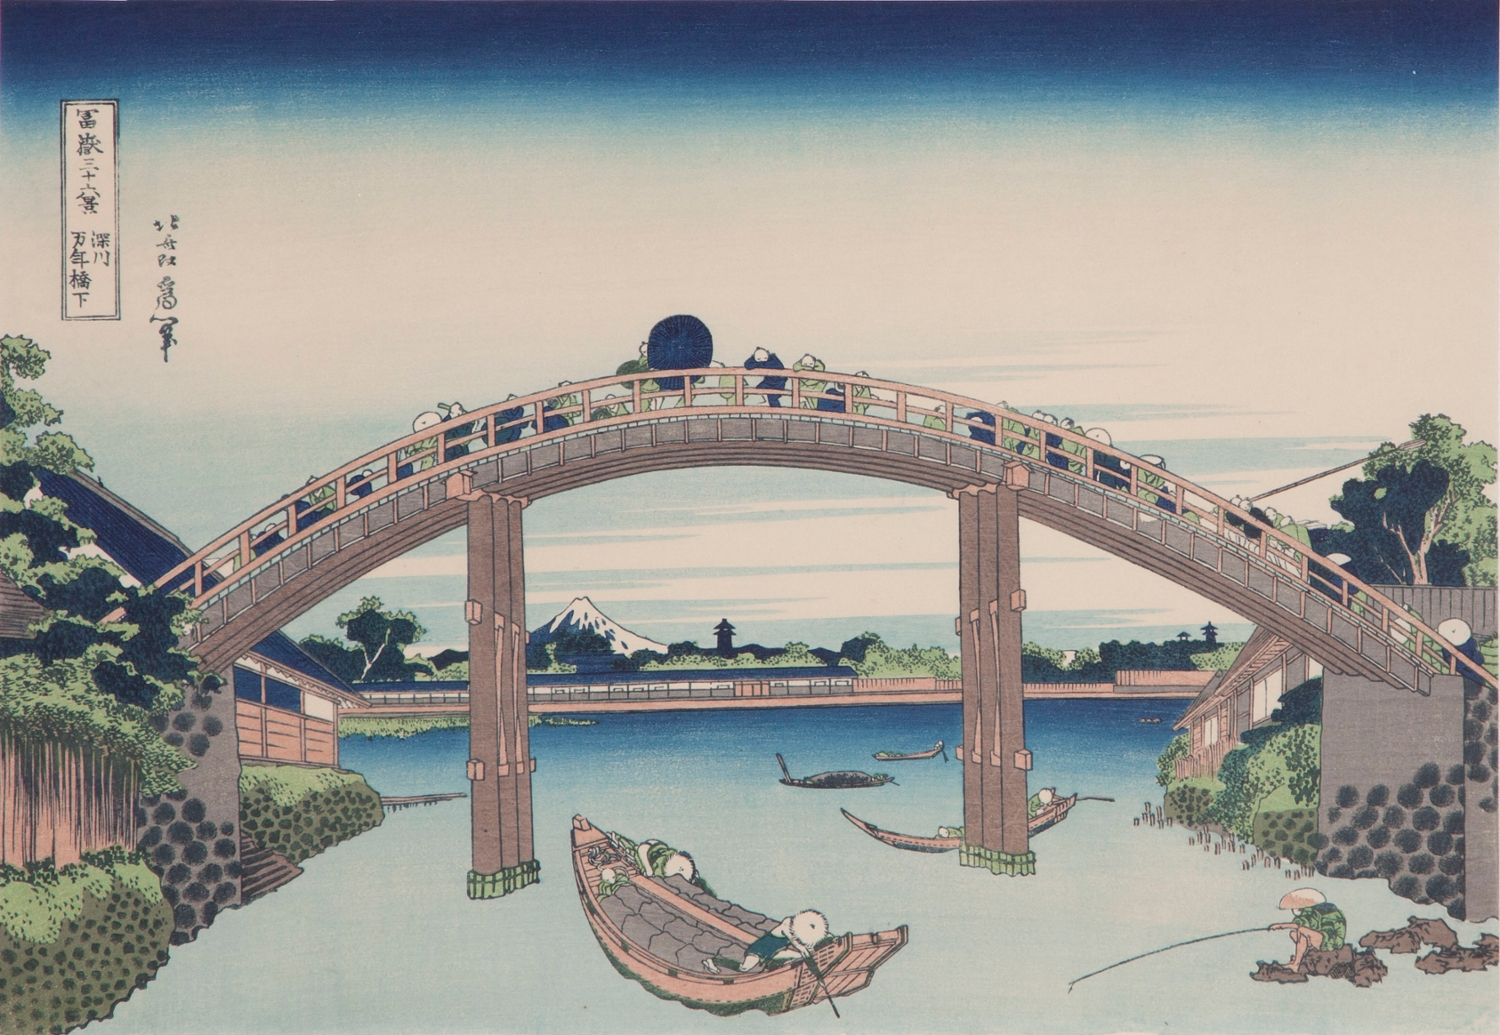 Katsushika Hokusai (Japanese, 1760-1849), Under Mannen Bridge at Fukagawa, from the series Thirty-Six Views of Mount Fuji, Edo period, c. 1830-1831, woodblock print, ink and color on paper, 10 5/16 x 14 13/16 in., Hofstra University Museum of Art, gift of Helen Goldberg, HU2000.8.2